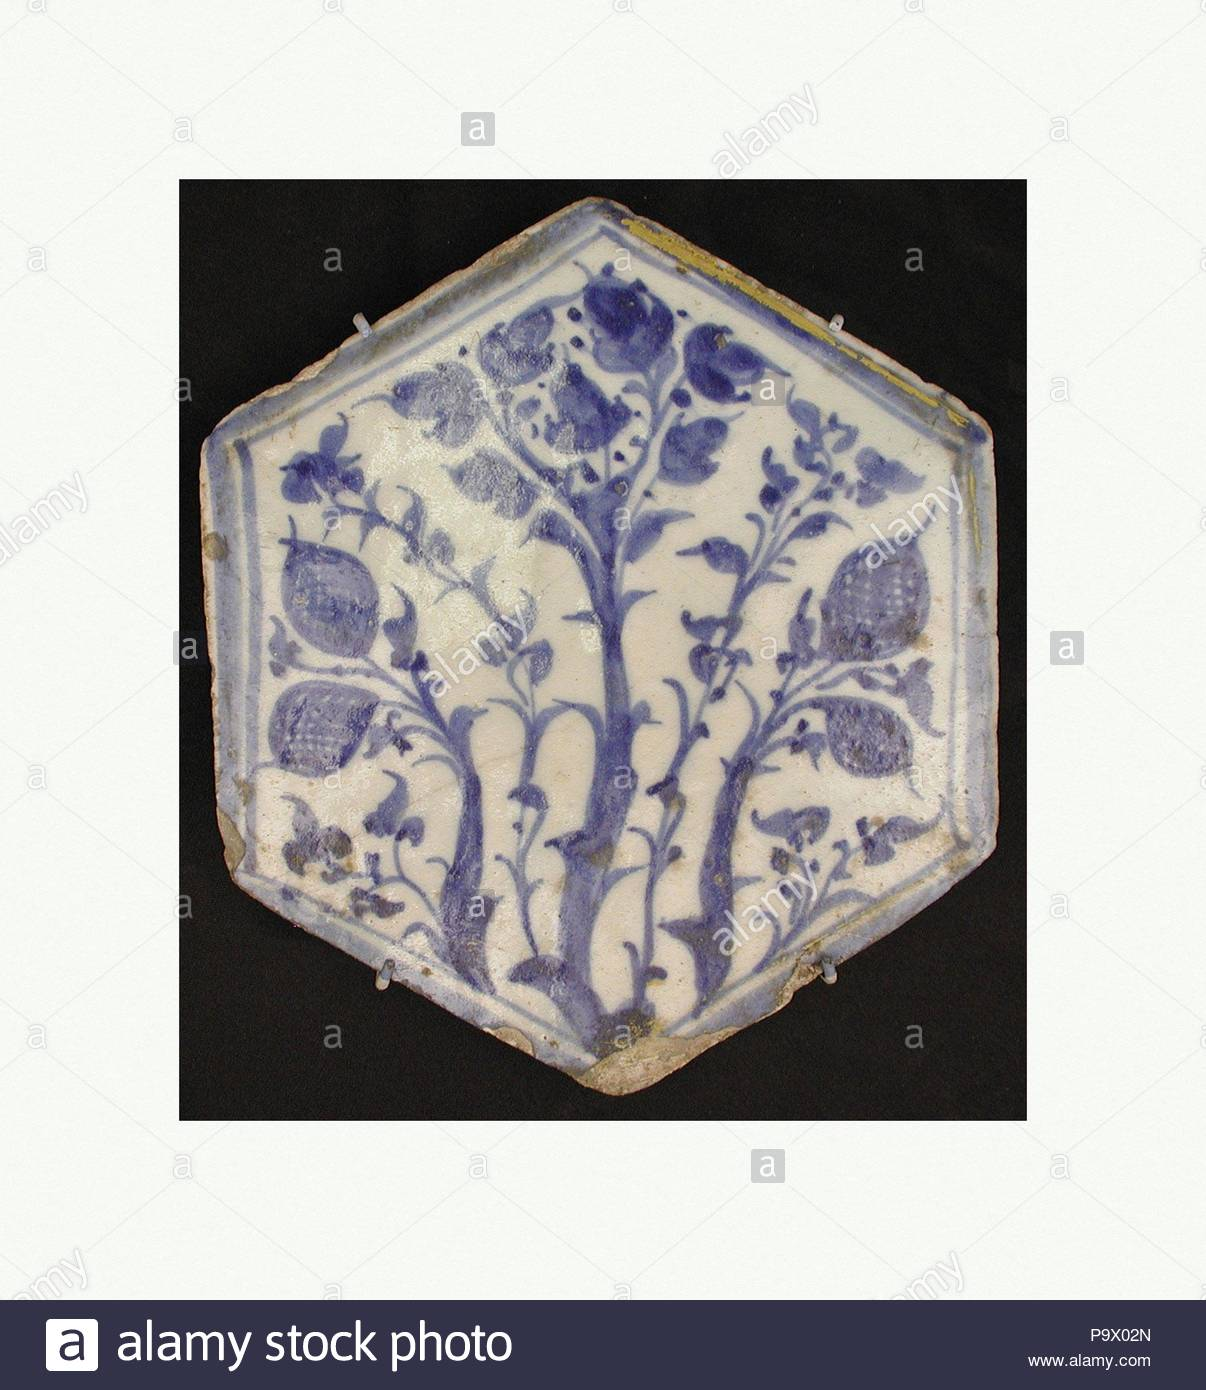 Hexagonal Tile Second Half 15th Century Attributed To Egypt